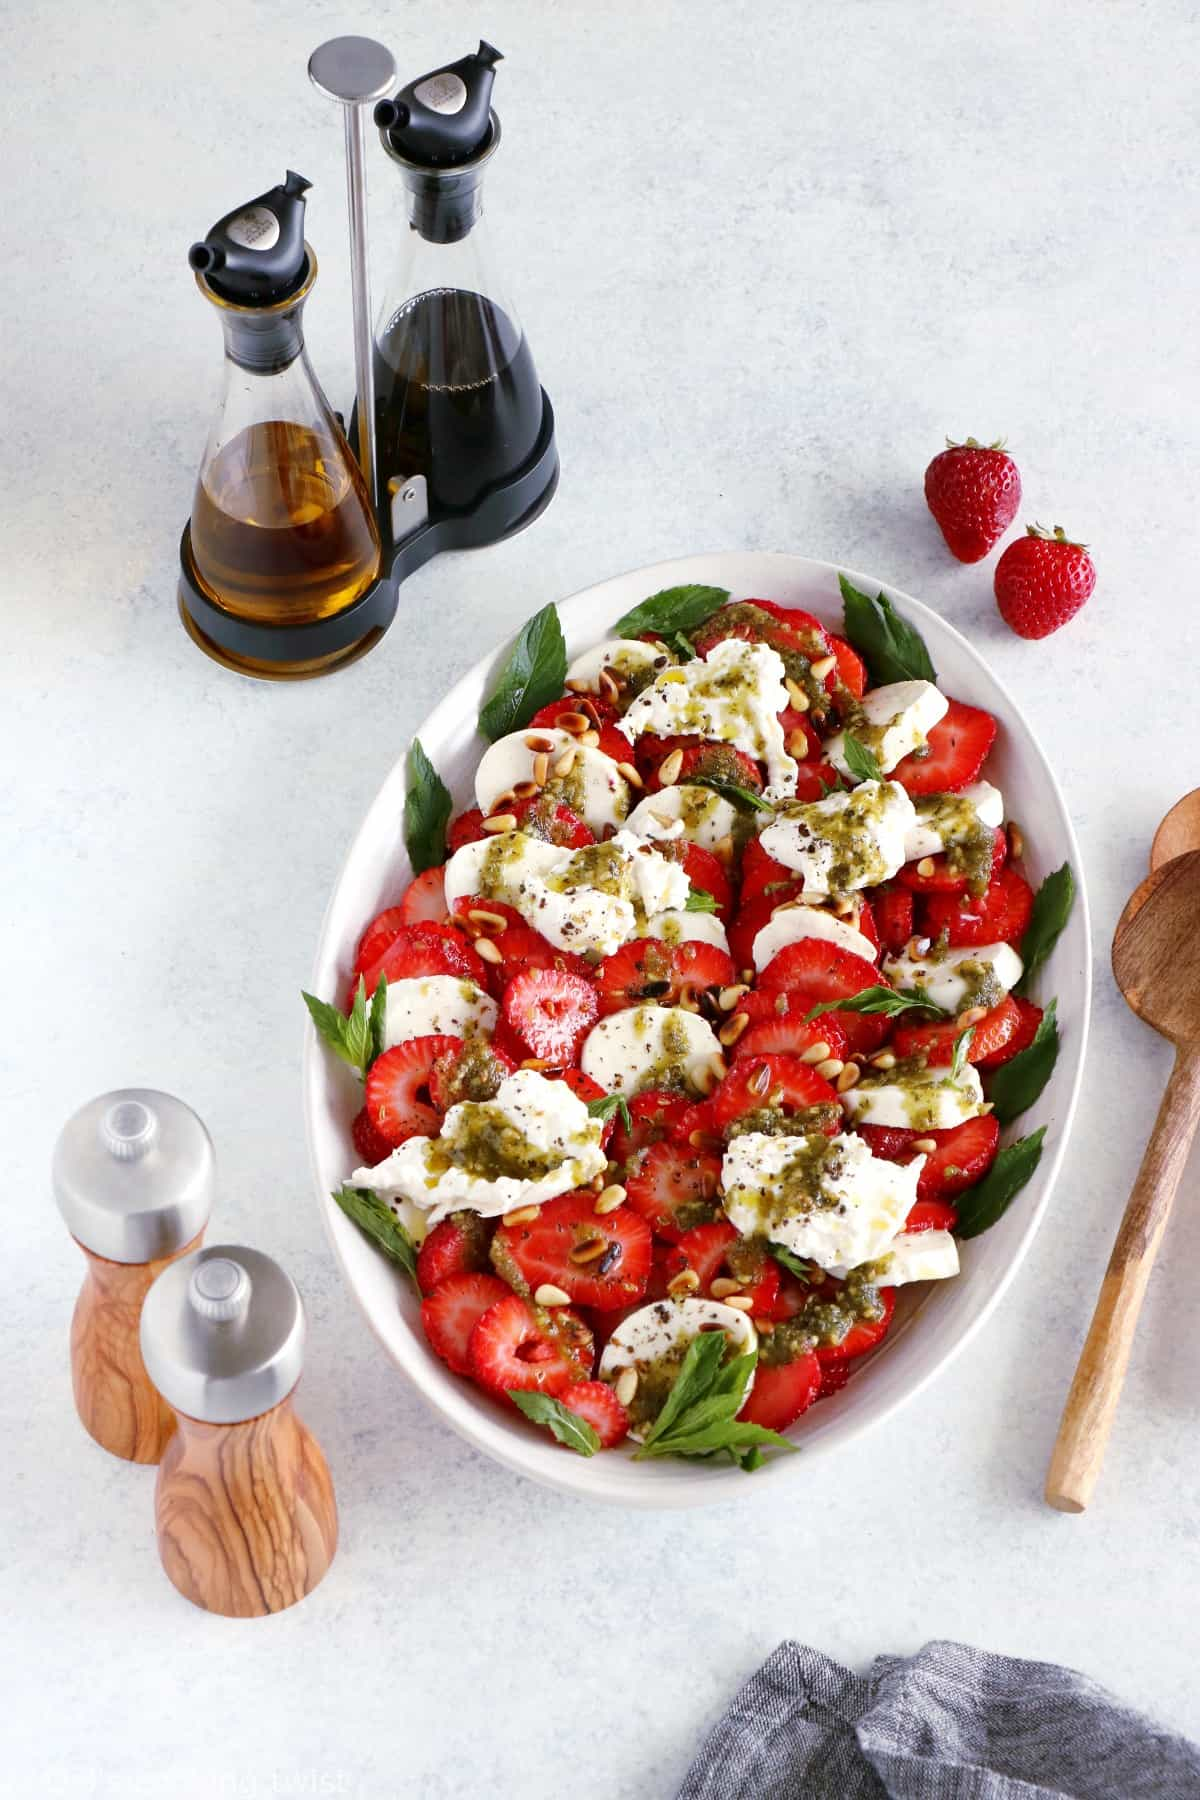 Strawberry Burrata Salad with Mint Pesto. This simple strawberry burrata salad with a mint pesto is full of summer goodness. It is loaded with refreshing flavors with juicy, creamy and crunchy textures. The salad is also naturally gluten-free and ready in no time!